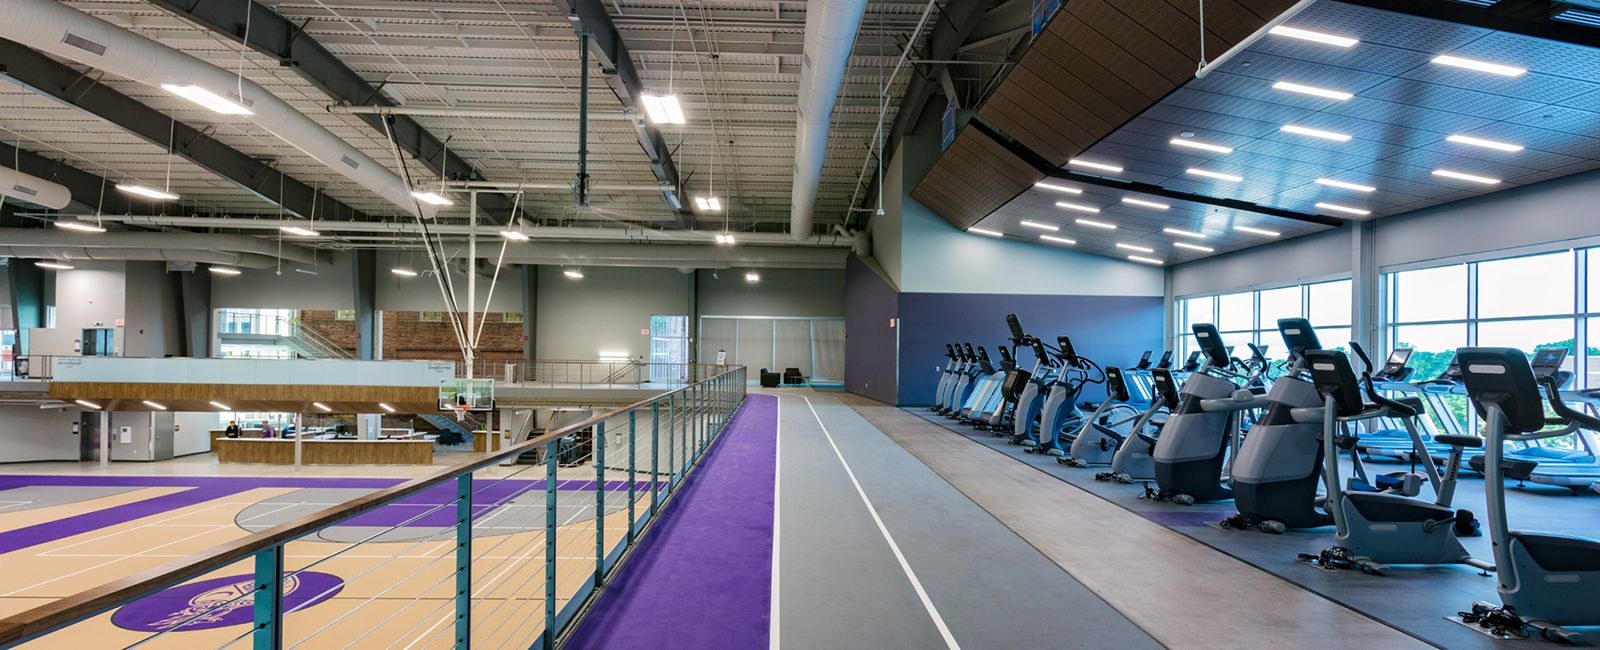 Project - Palmer College - R. Richard Bittner Athletic and Recreation Center - 3